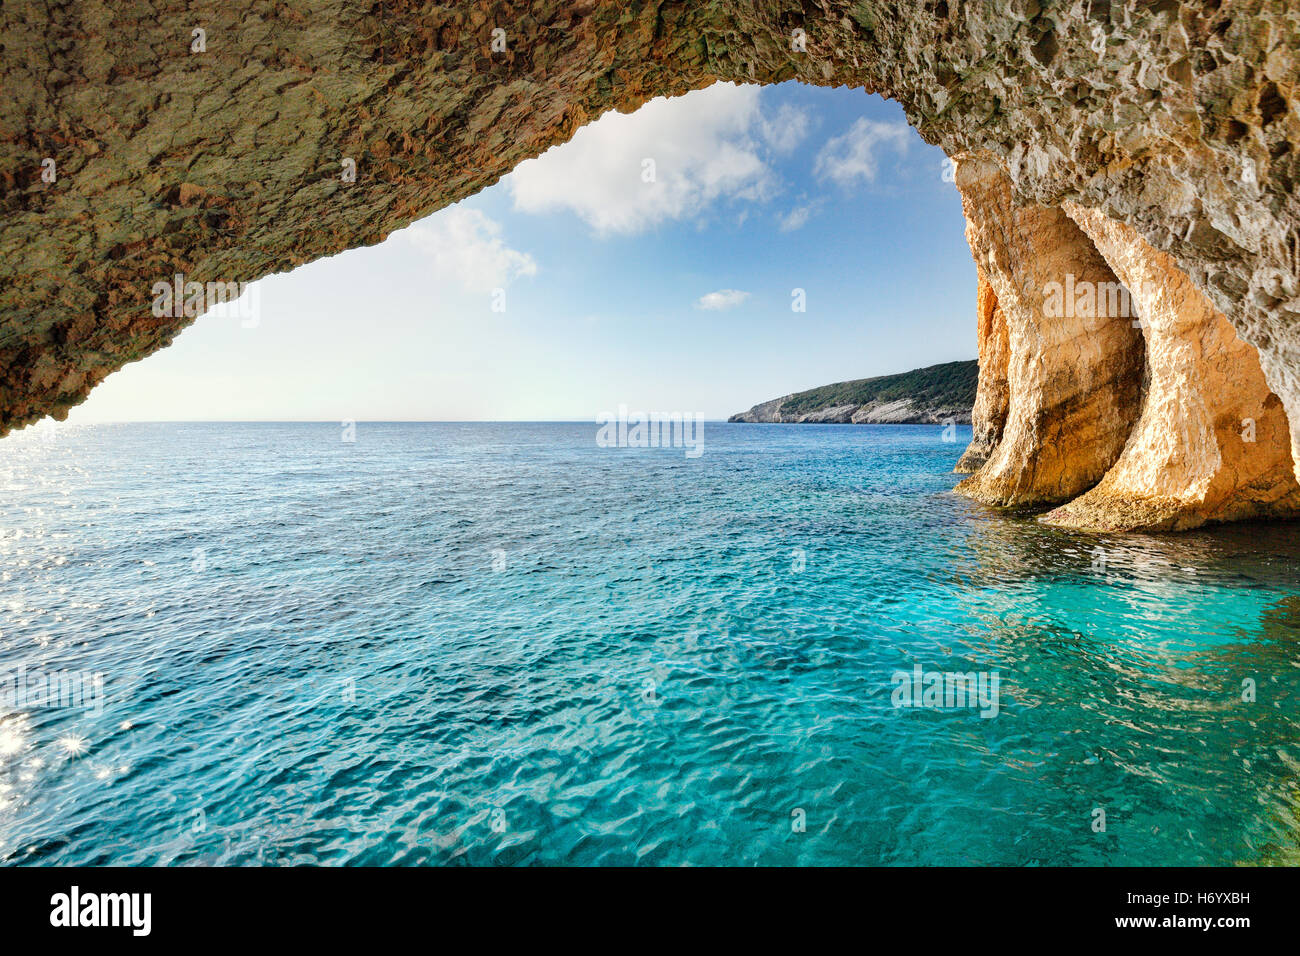 The famous Blue Caves in Zakynthos island, Greece - Stock Image